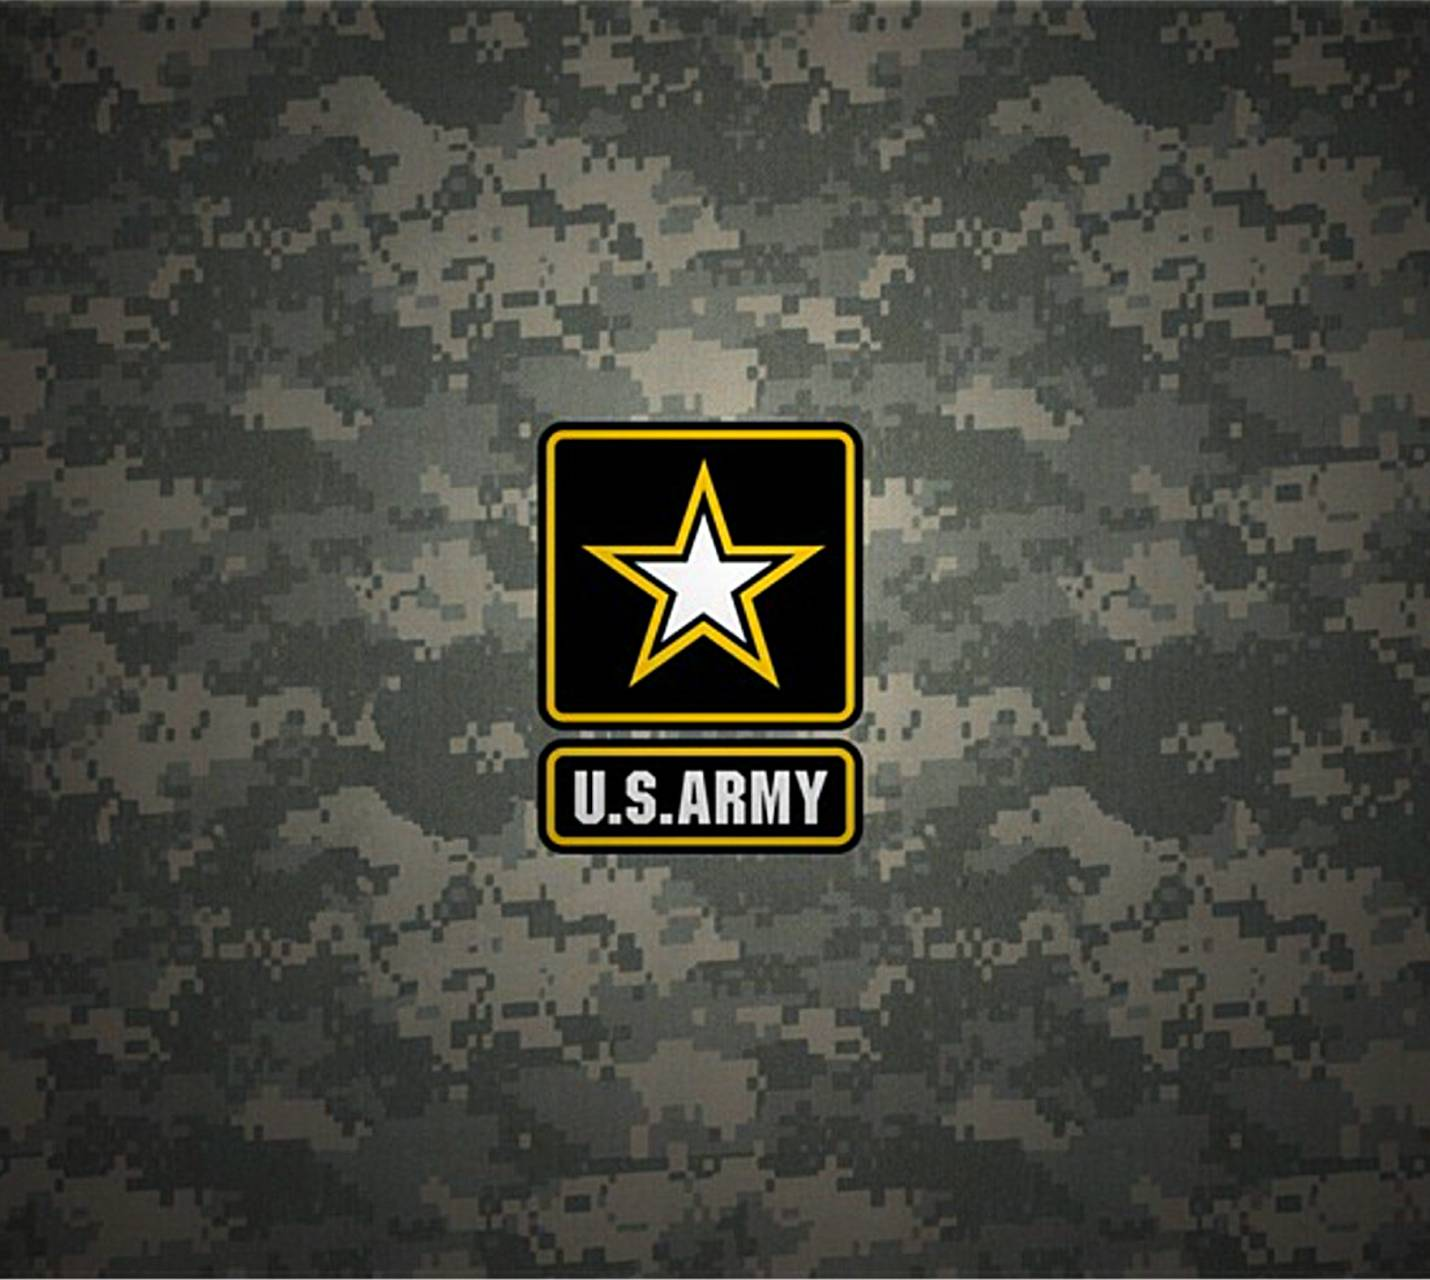 Download free us army wallpapers for your mobile phone